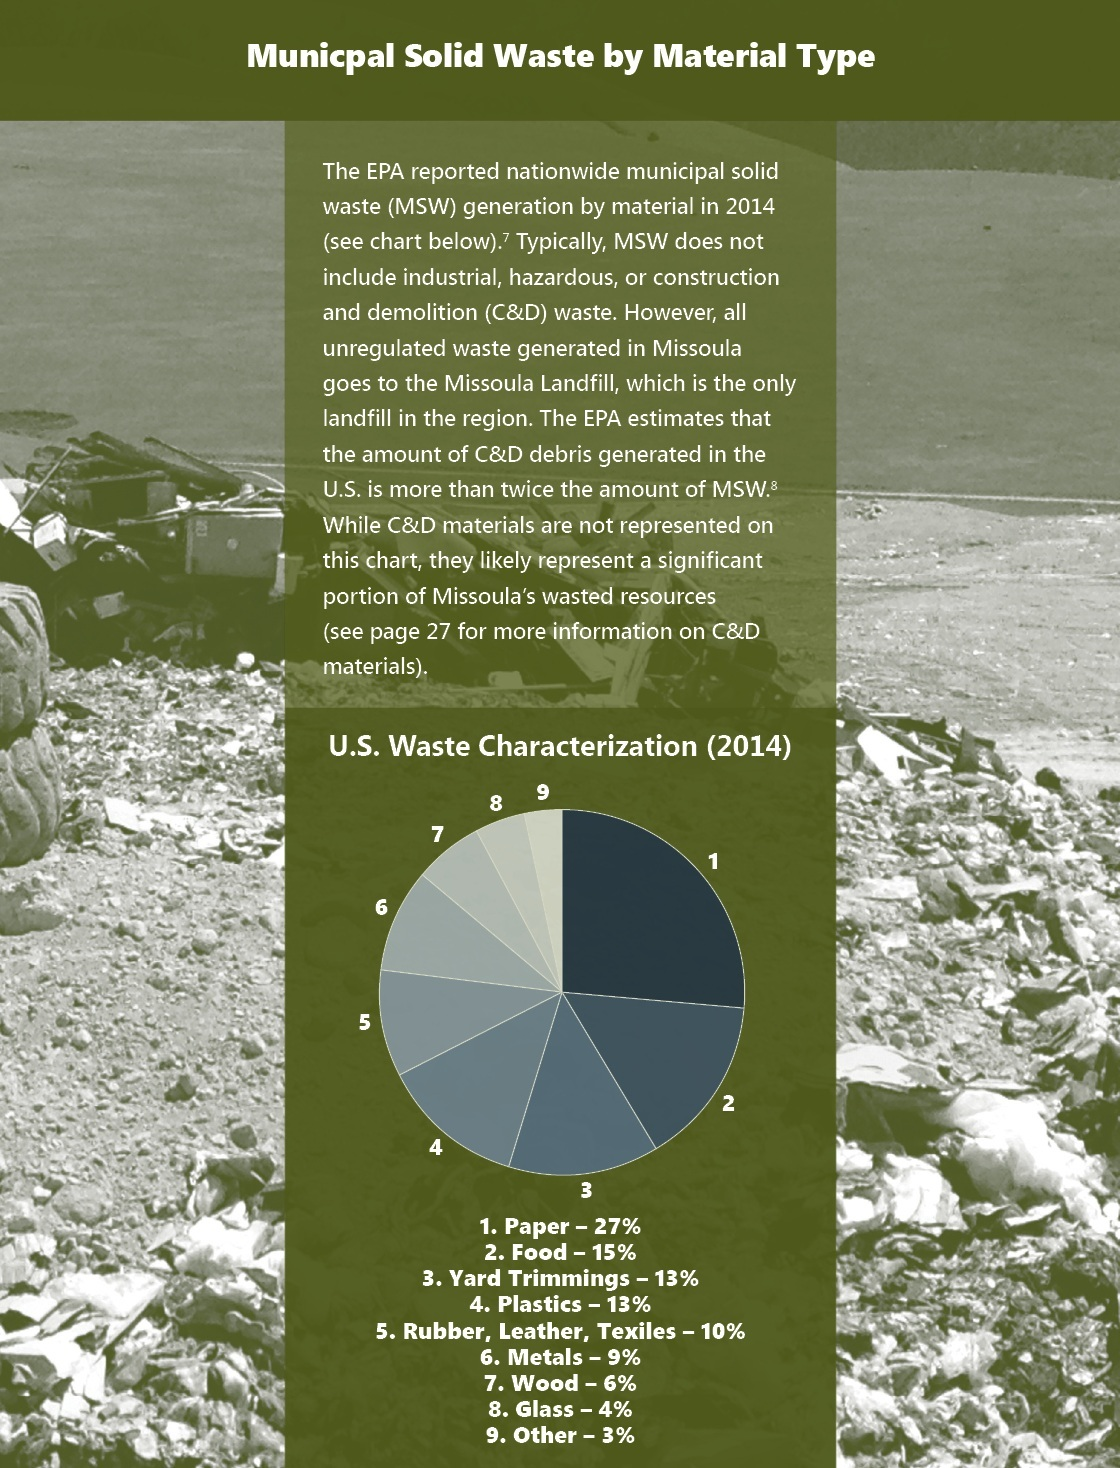 Municipal Solid Waste Pie Chart by Material Type